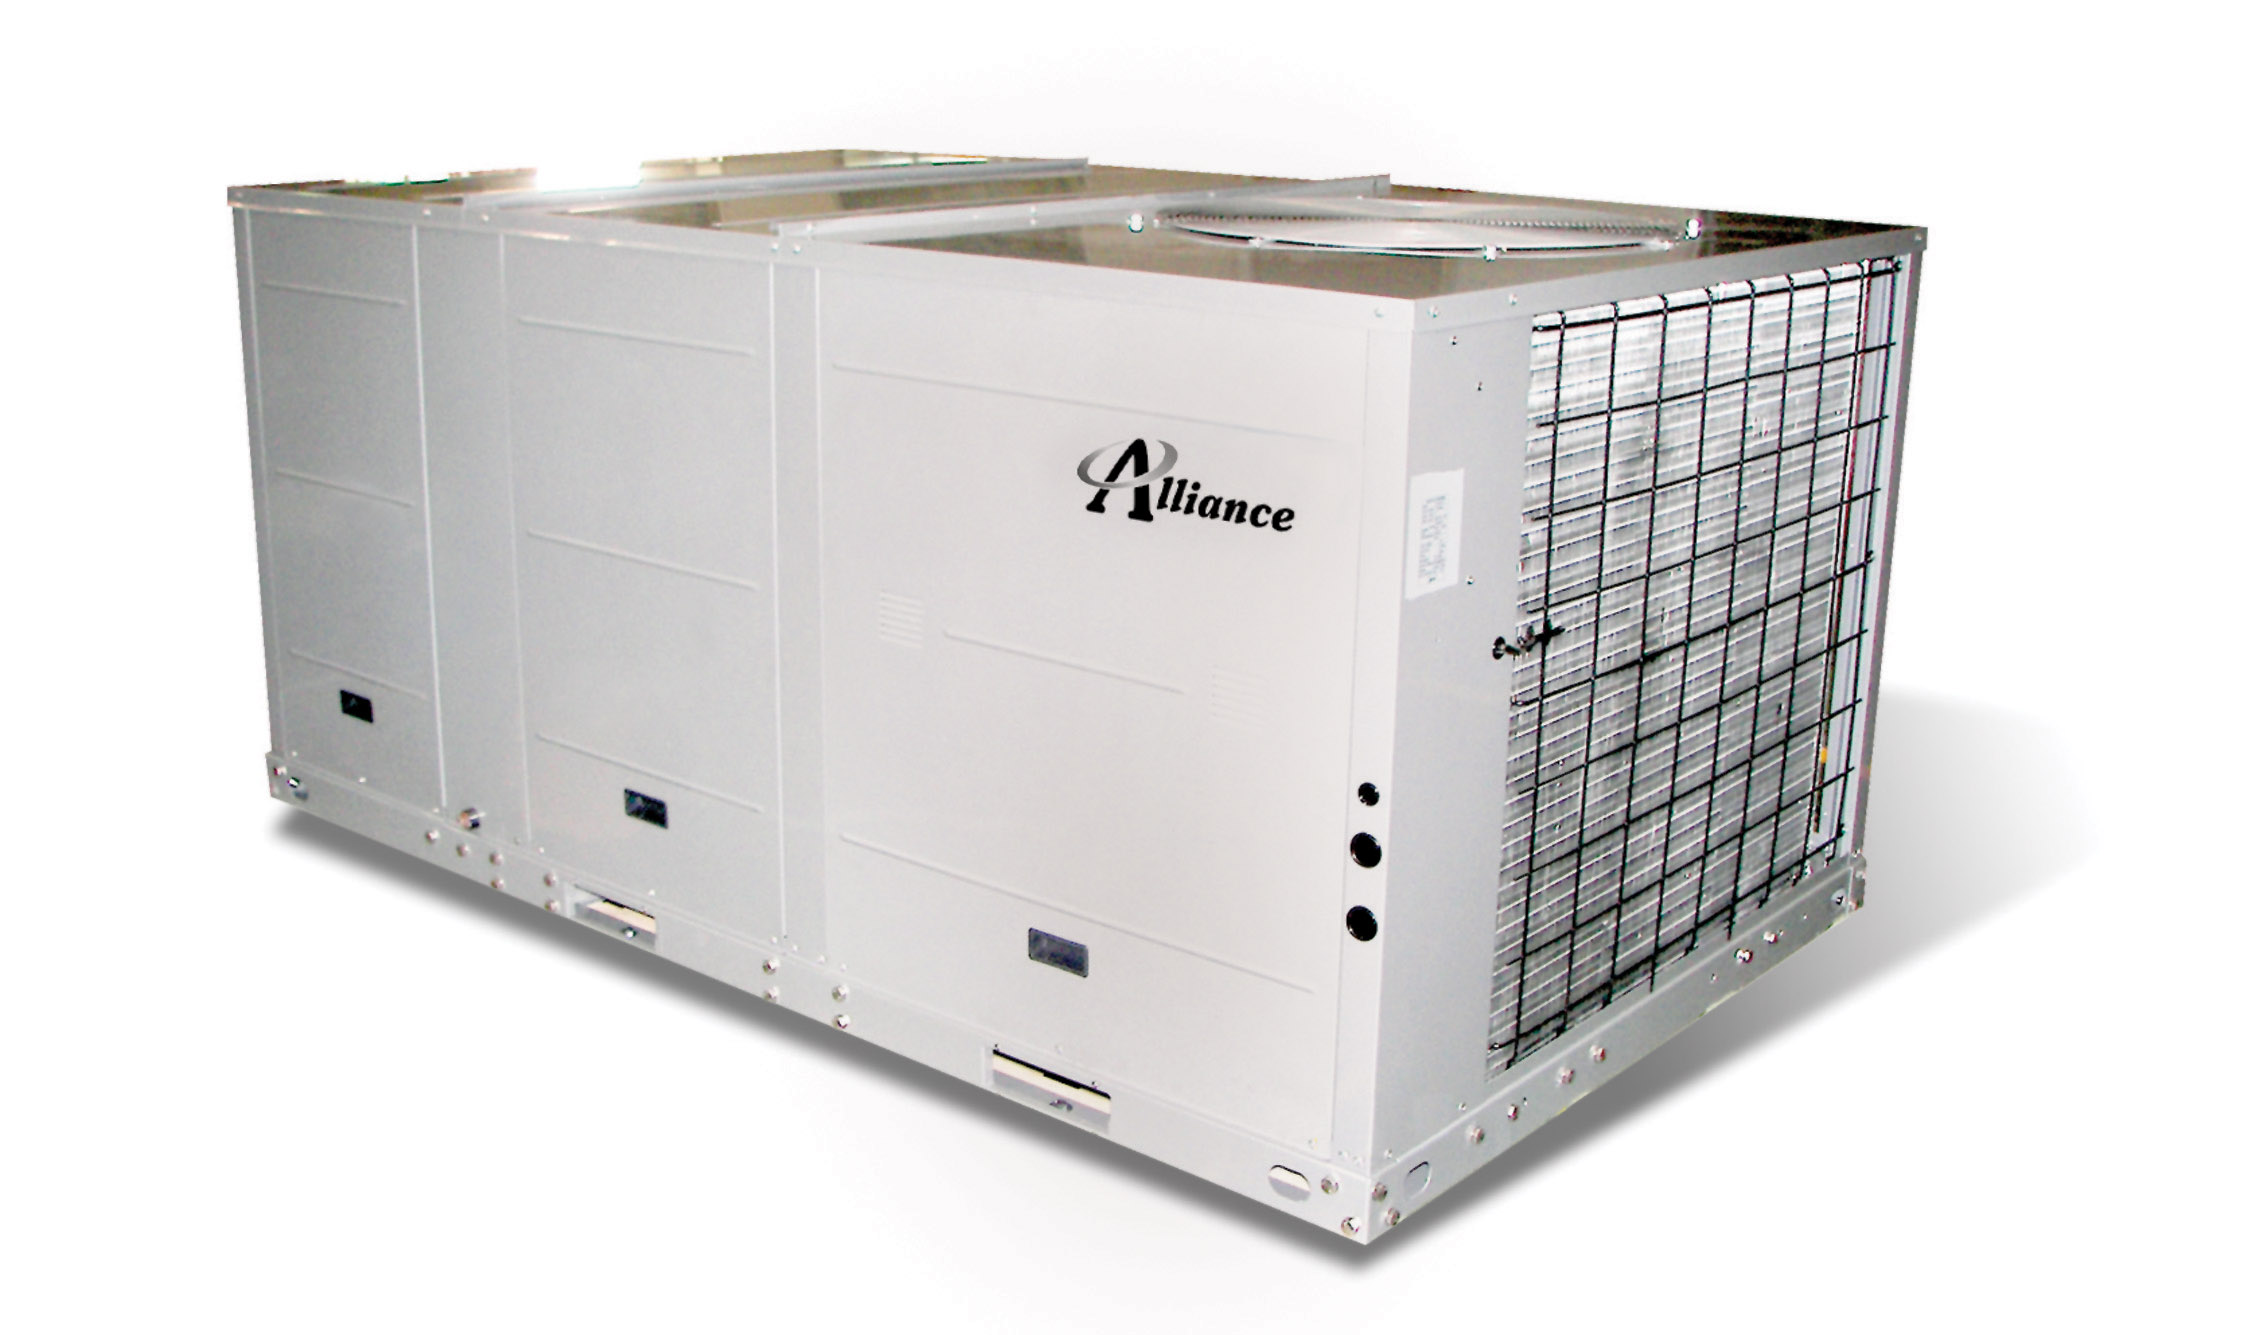 #6C654B Air Conditioners Alliance Air Conditioniner Suppliers  Best 2143 Cooler And Heater Units photos with 2244x1335 px on helpvideos.info - Air Conditioners, Air Coolers and more